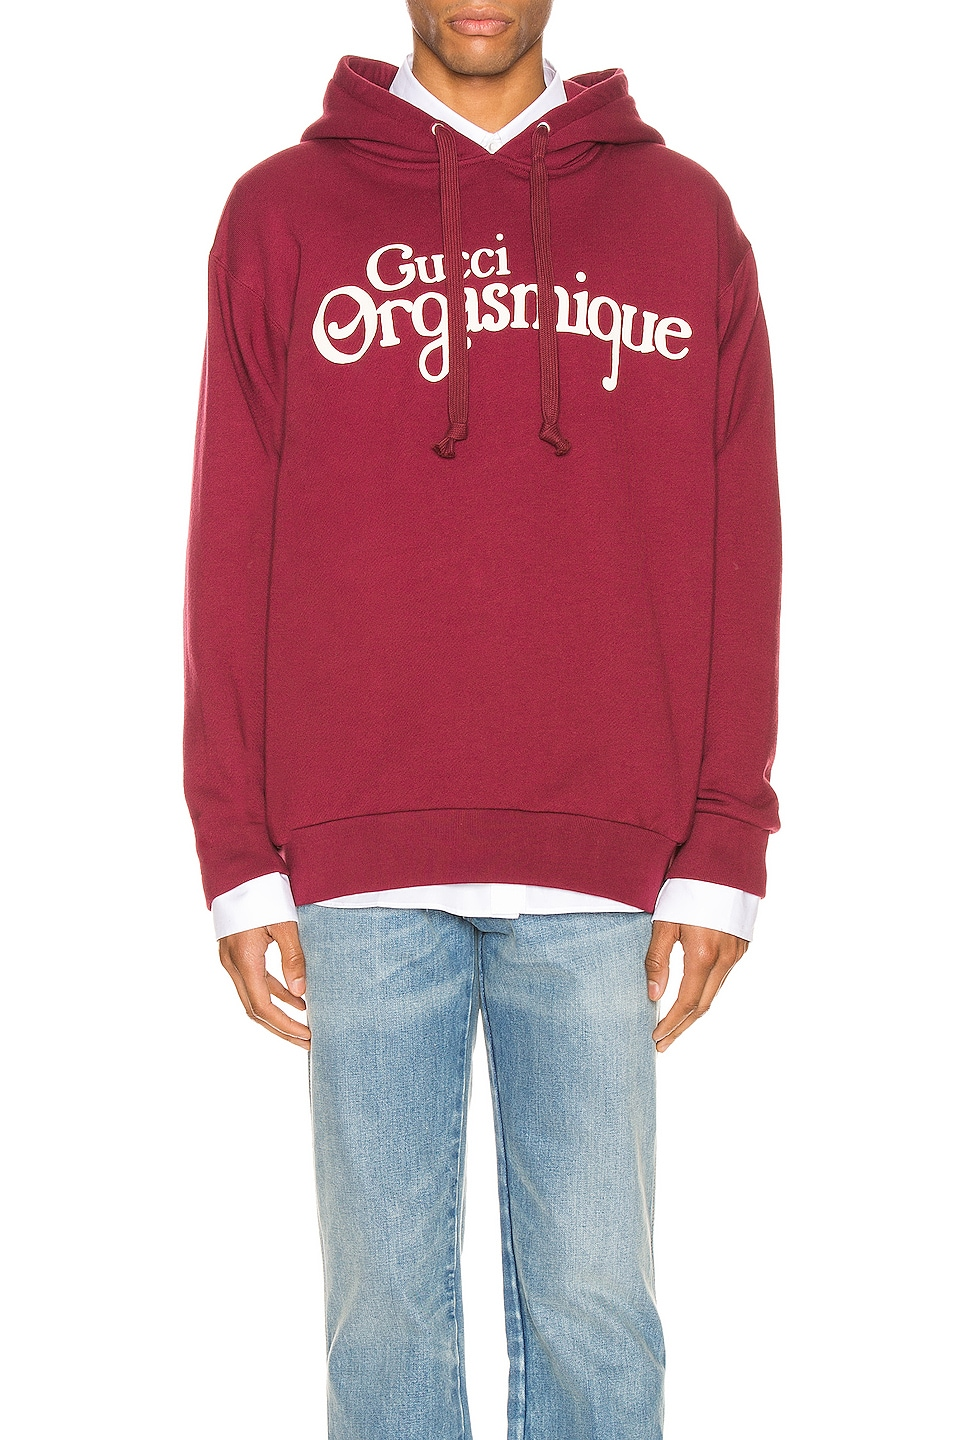 Image 1 of Gucci Pullover Hoodie in Bordeaux & Ivory